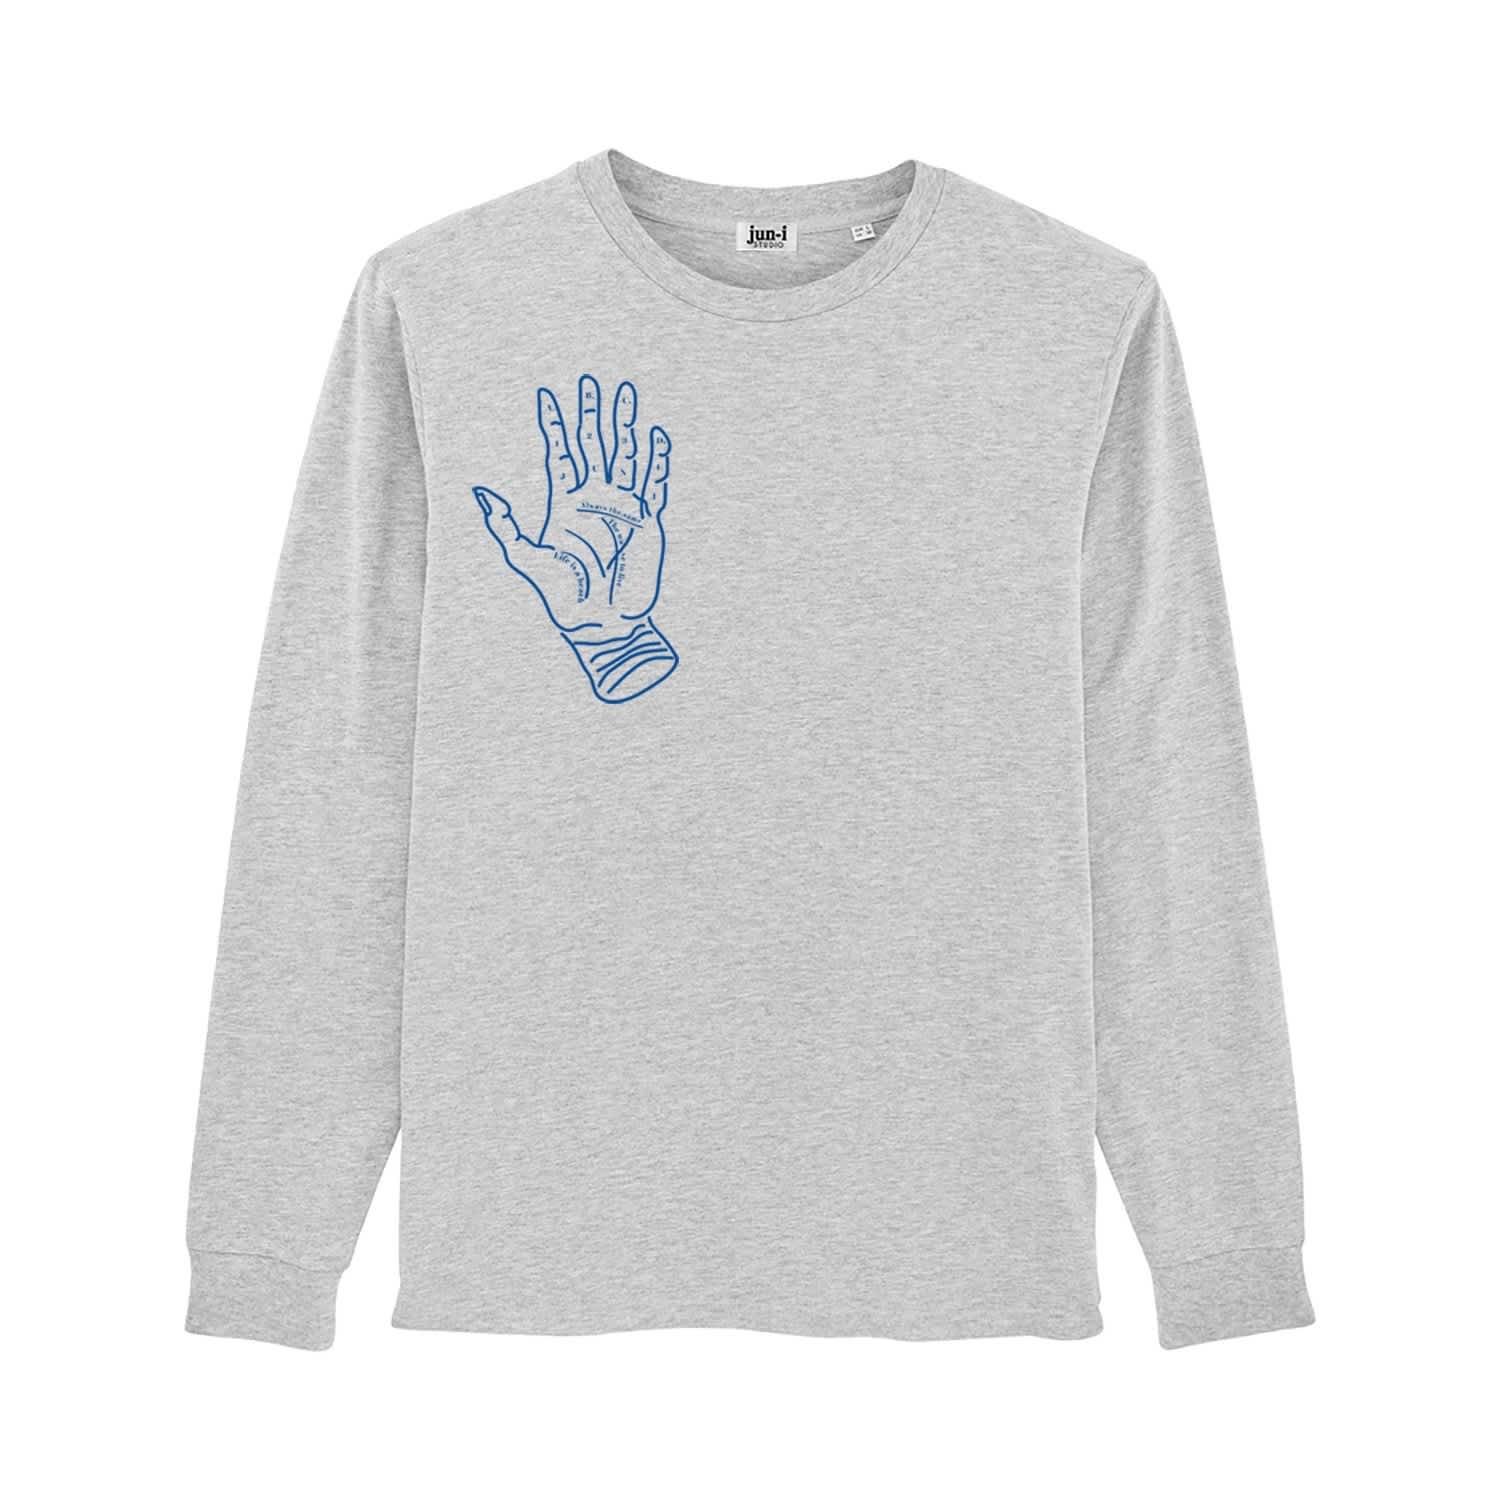 7bb66bb45f56b Palm Reader Long Sleeve T-Shirt image